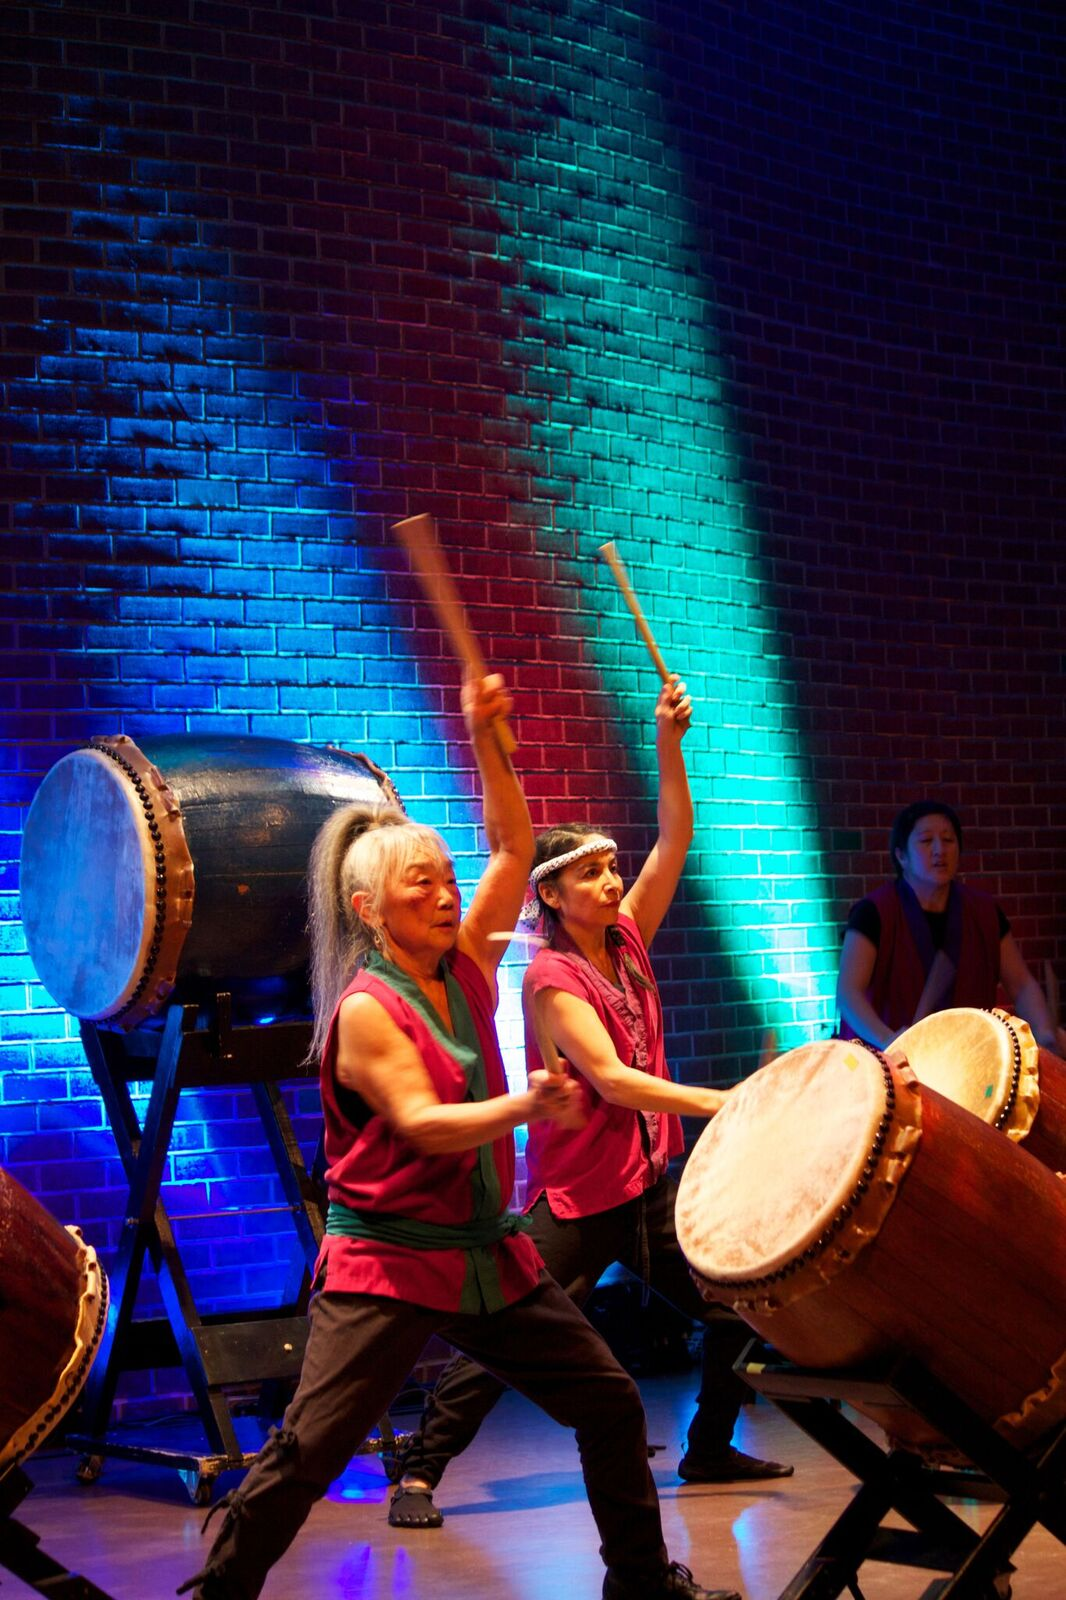 Sawagi Taiko & Tzo'kam. Photo via Heart of the City.